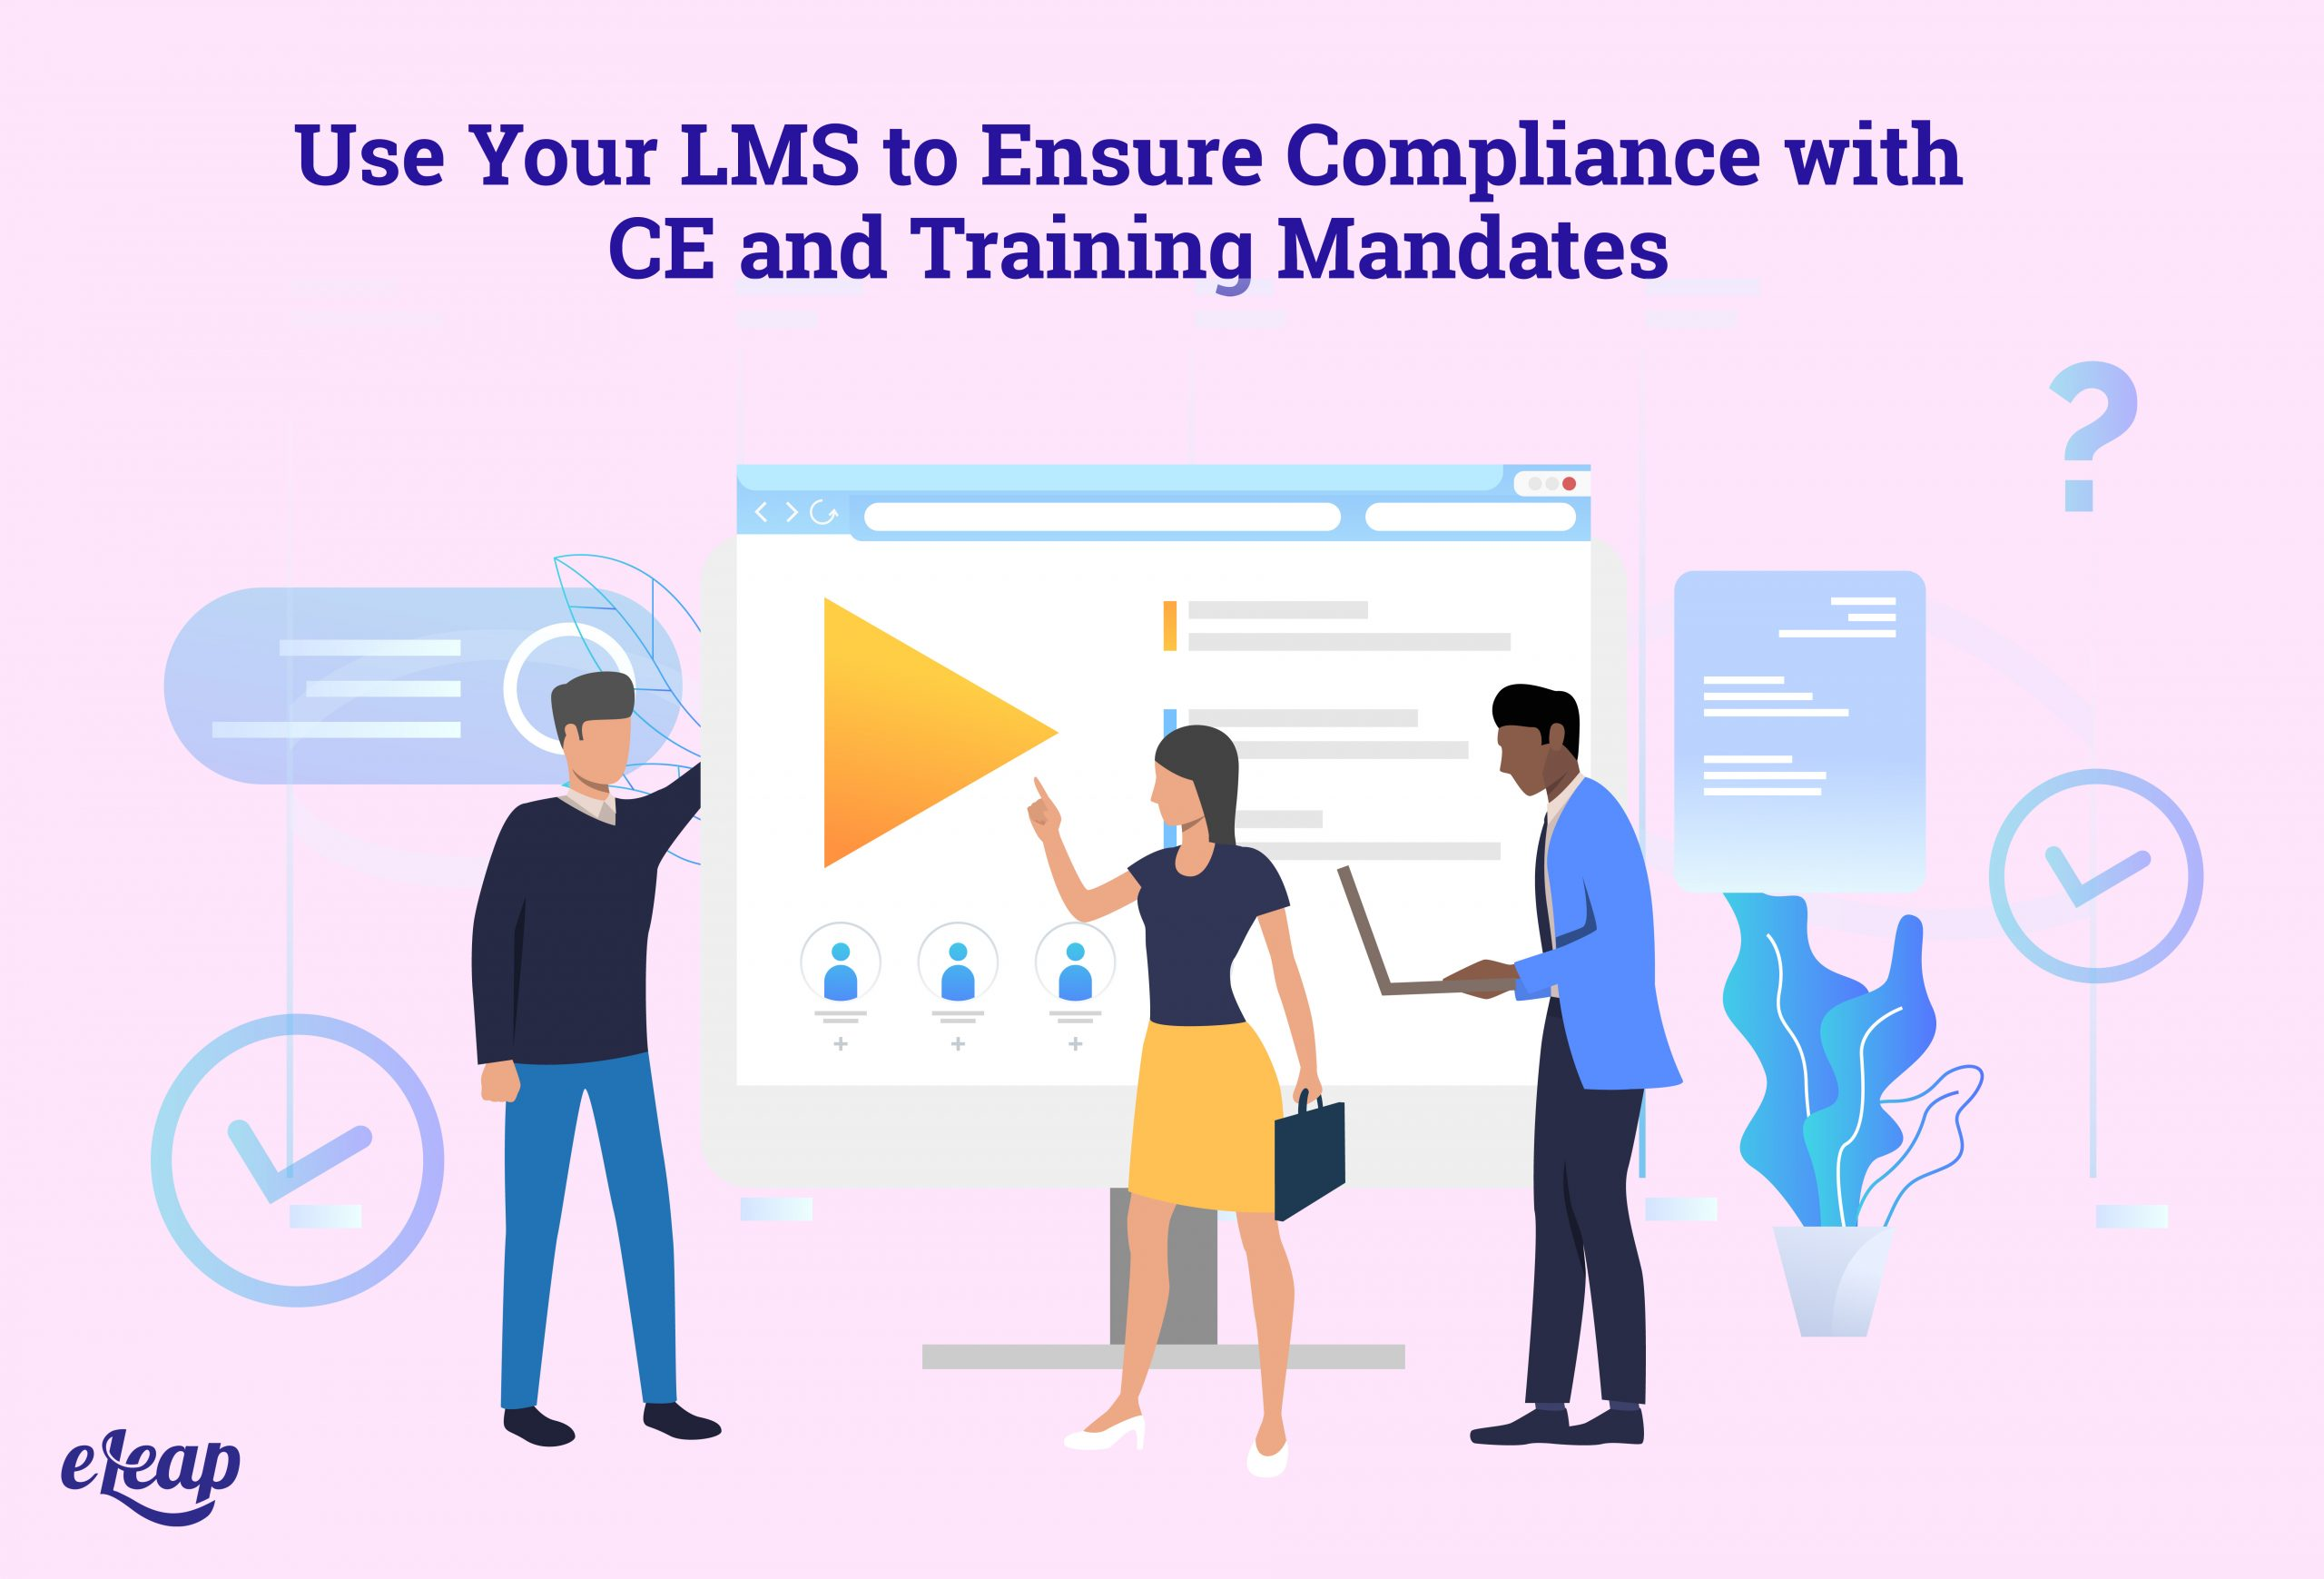 Use Your LMS to Ensure Compliance with CE and Training Mandates